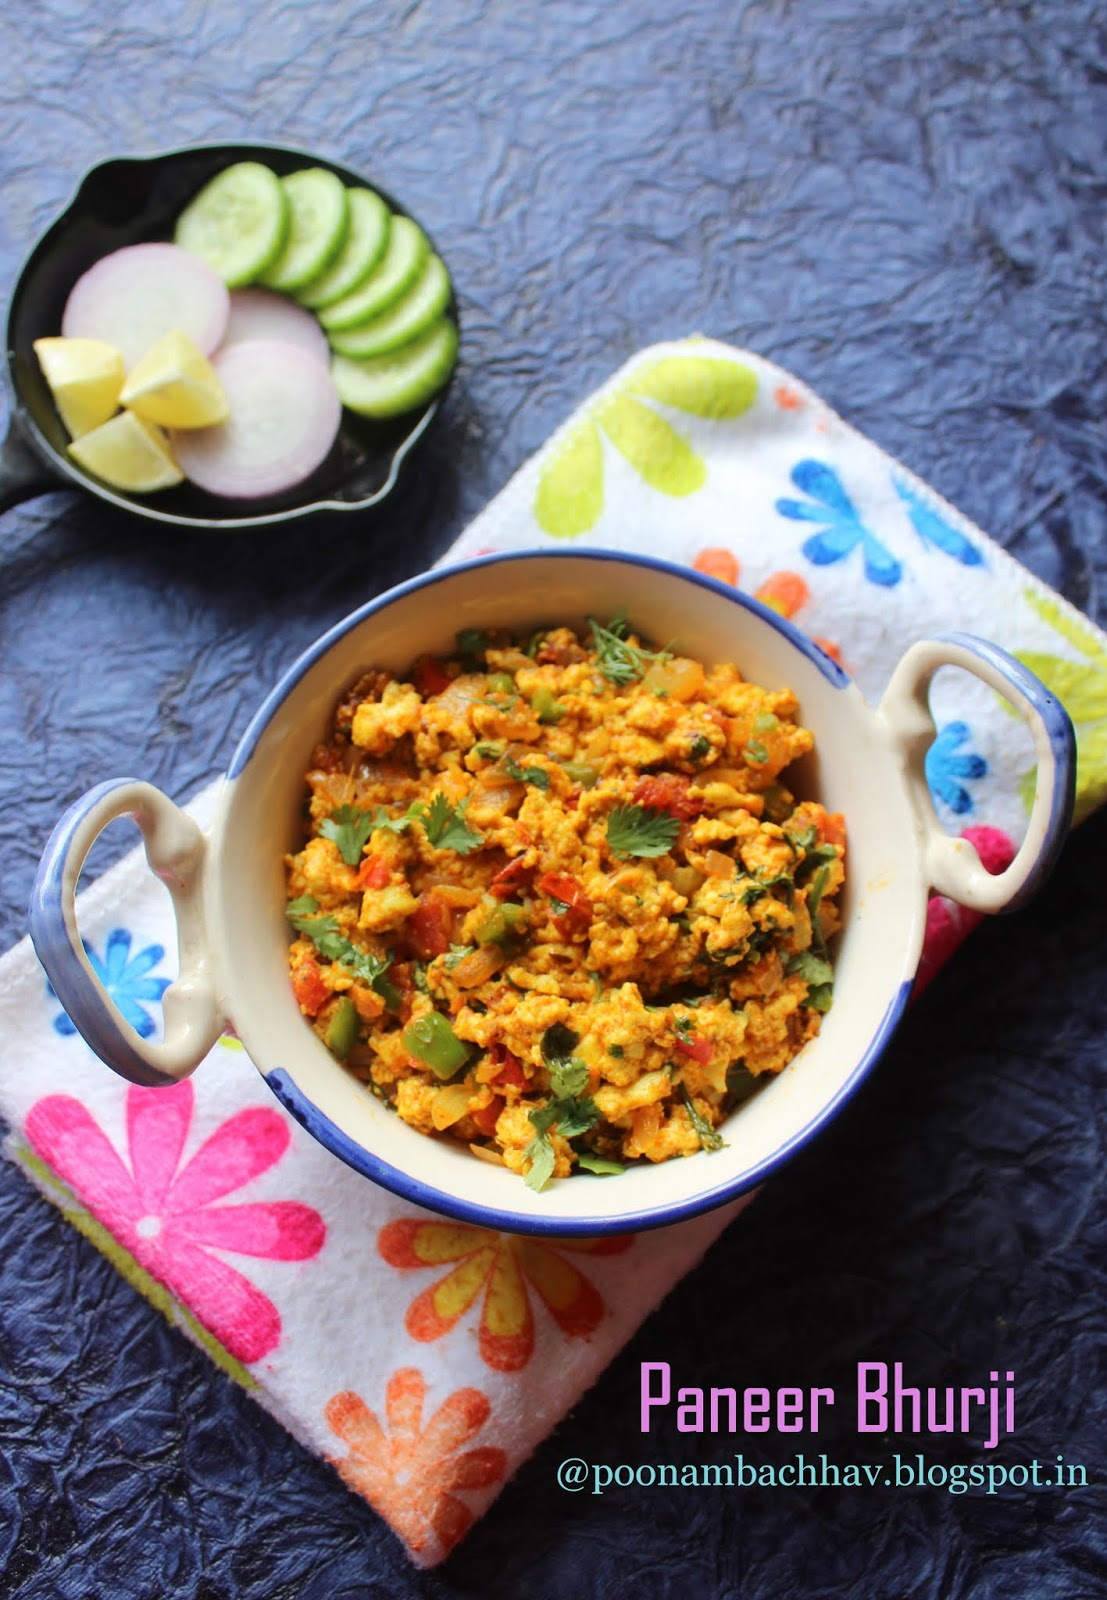 Annapurna Paneer Bhurji Scrambled Indian Cottage Cheese Recipe